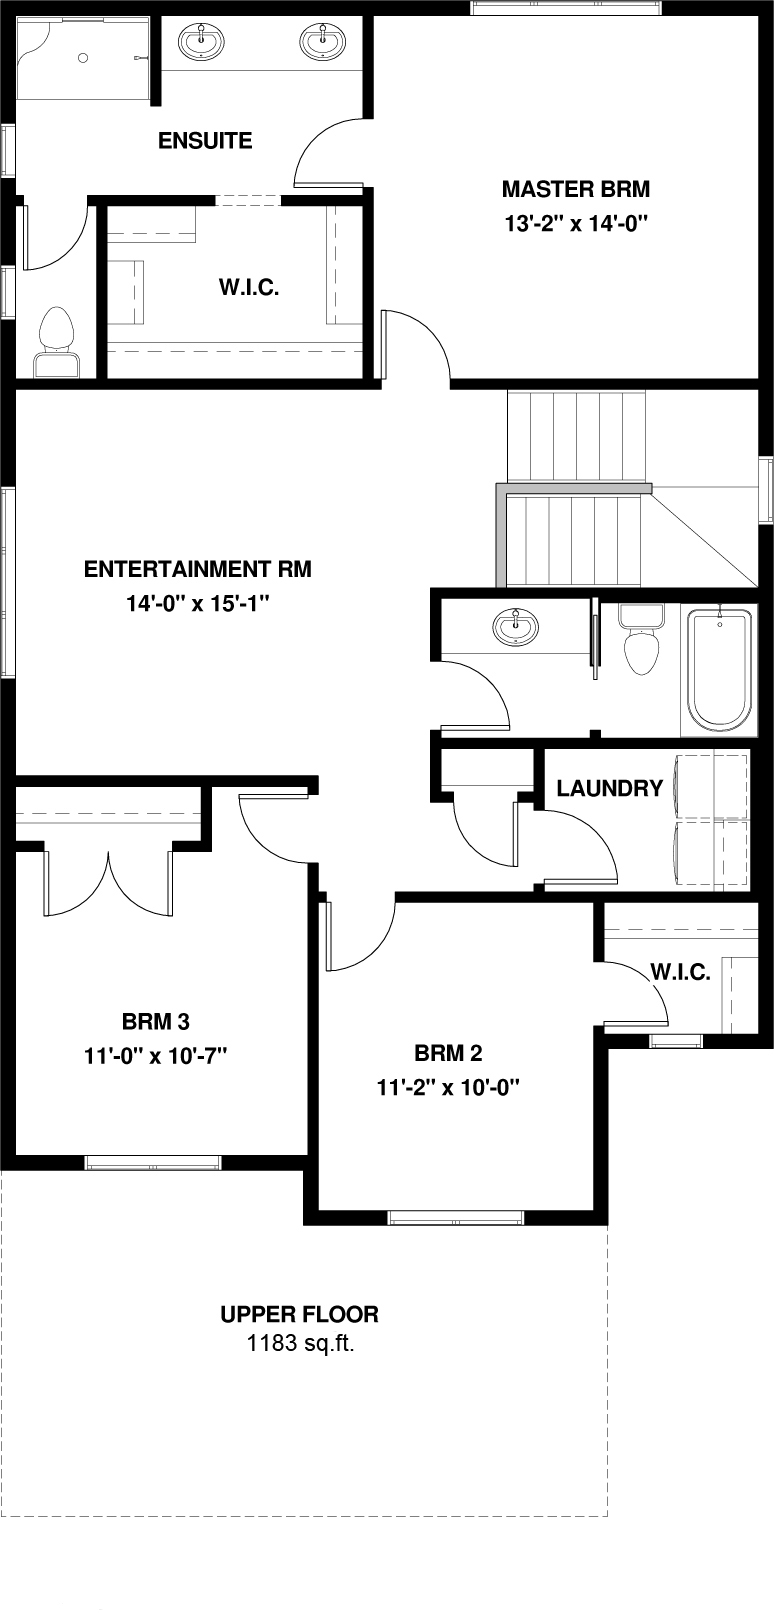 Upper Floor  1183 sq ft